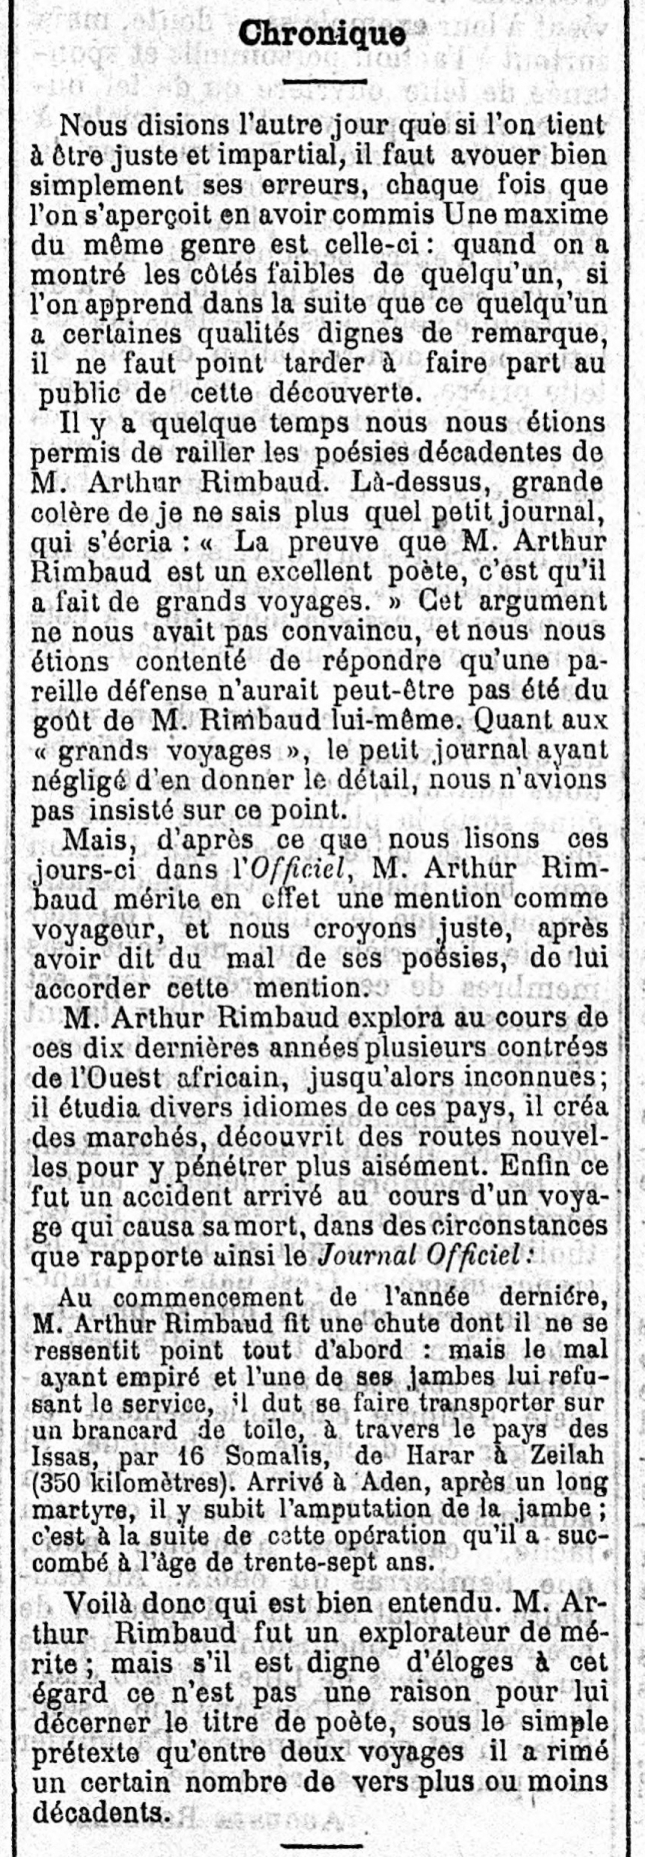 MORT RIMBAUD UNIVERS 8778 31 1 92